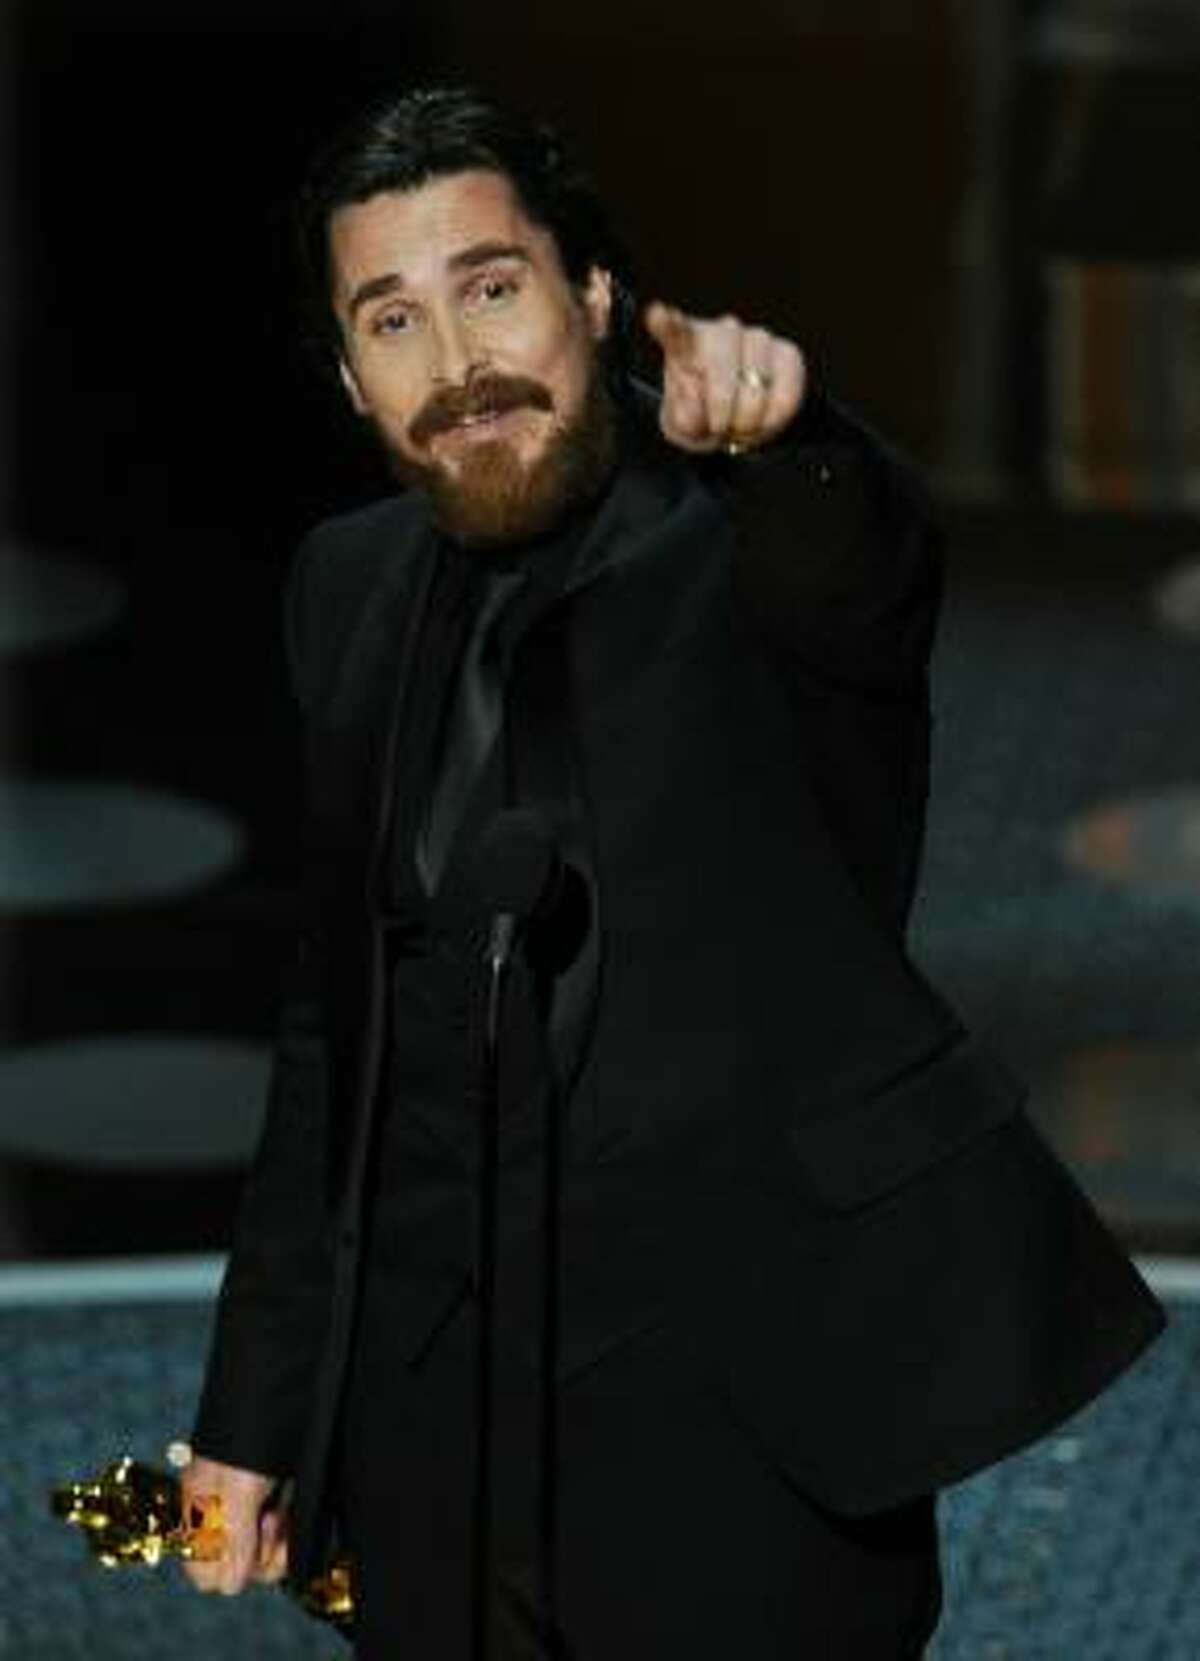 Best Supporting Actor Christian Bale for The Fighter